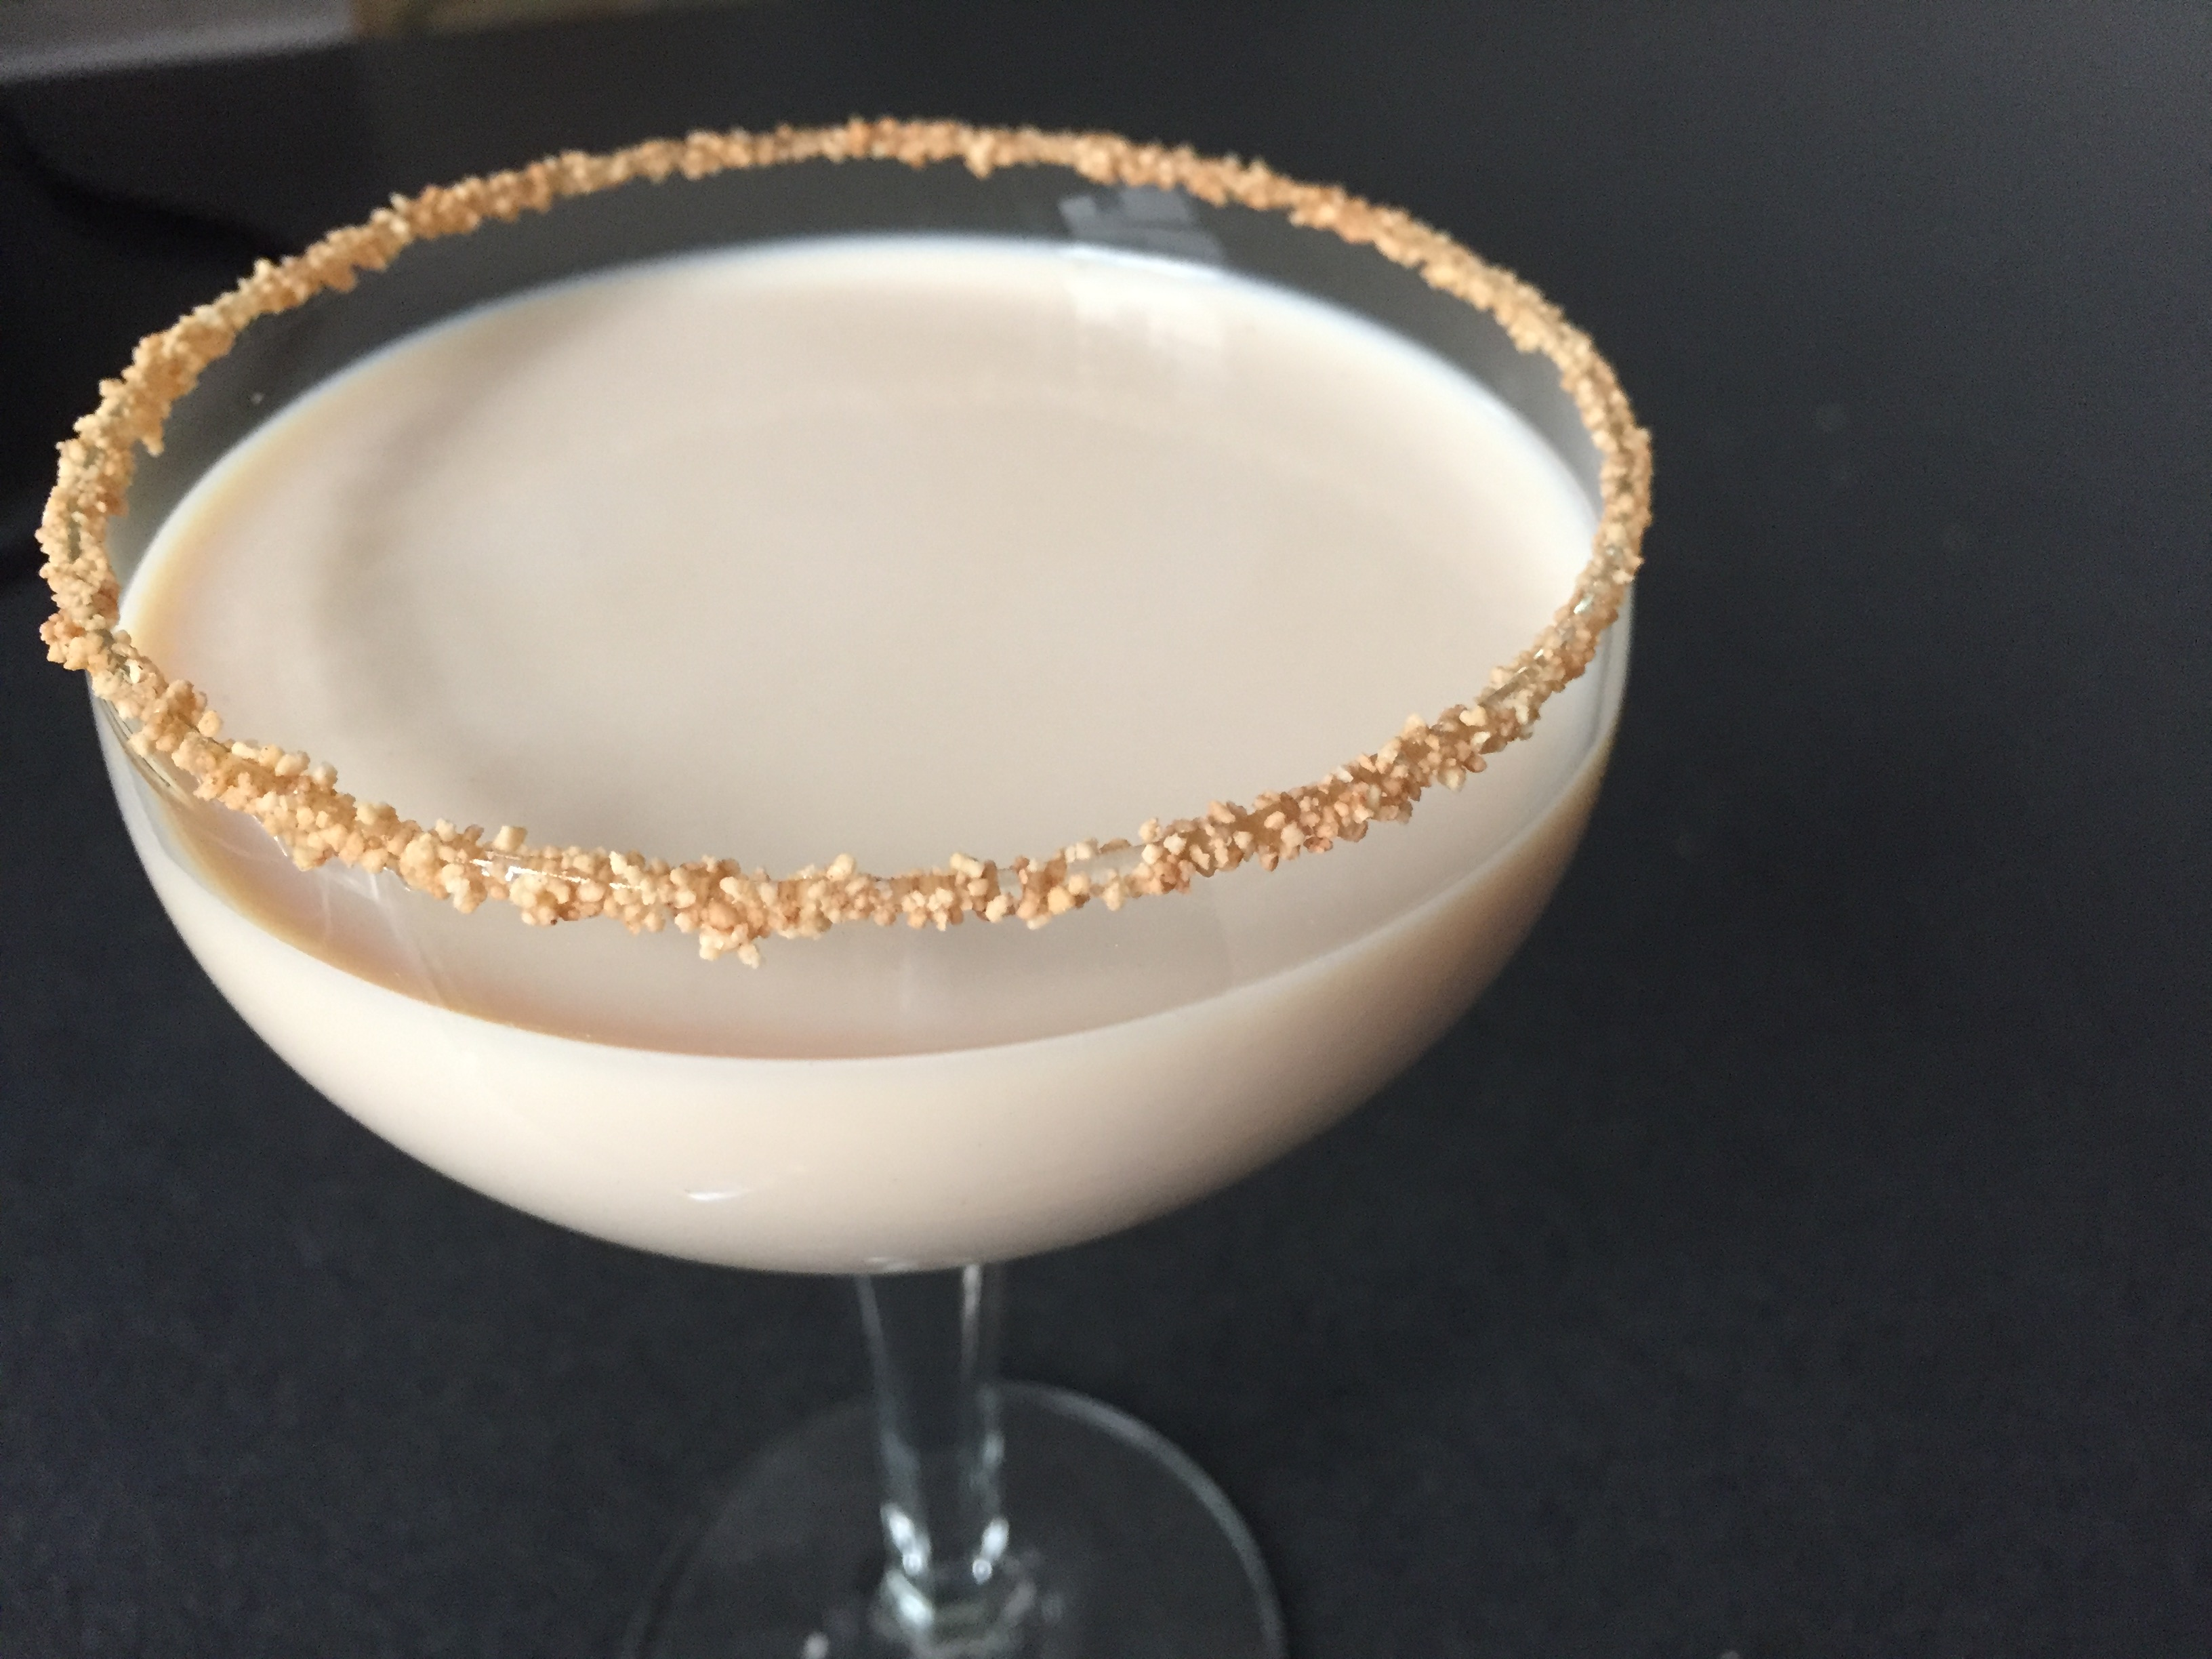 Churro Cocktail captain morgan spiced rum rumchata butterscotch schnapps